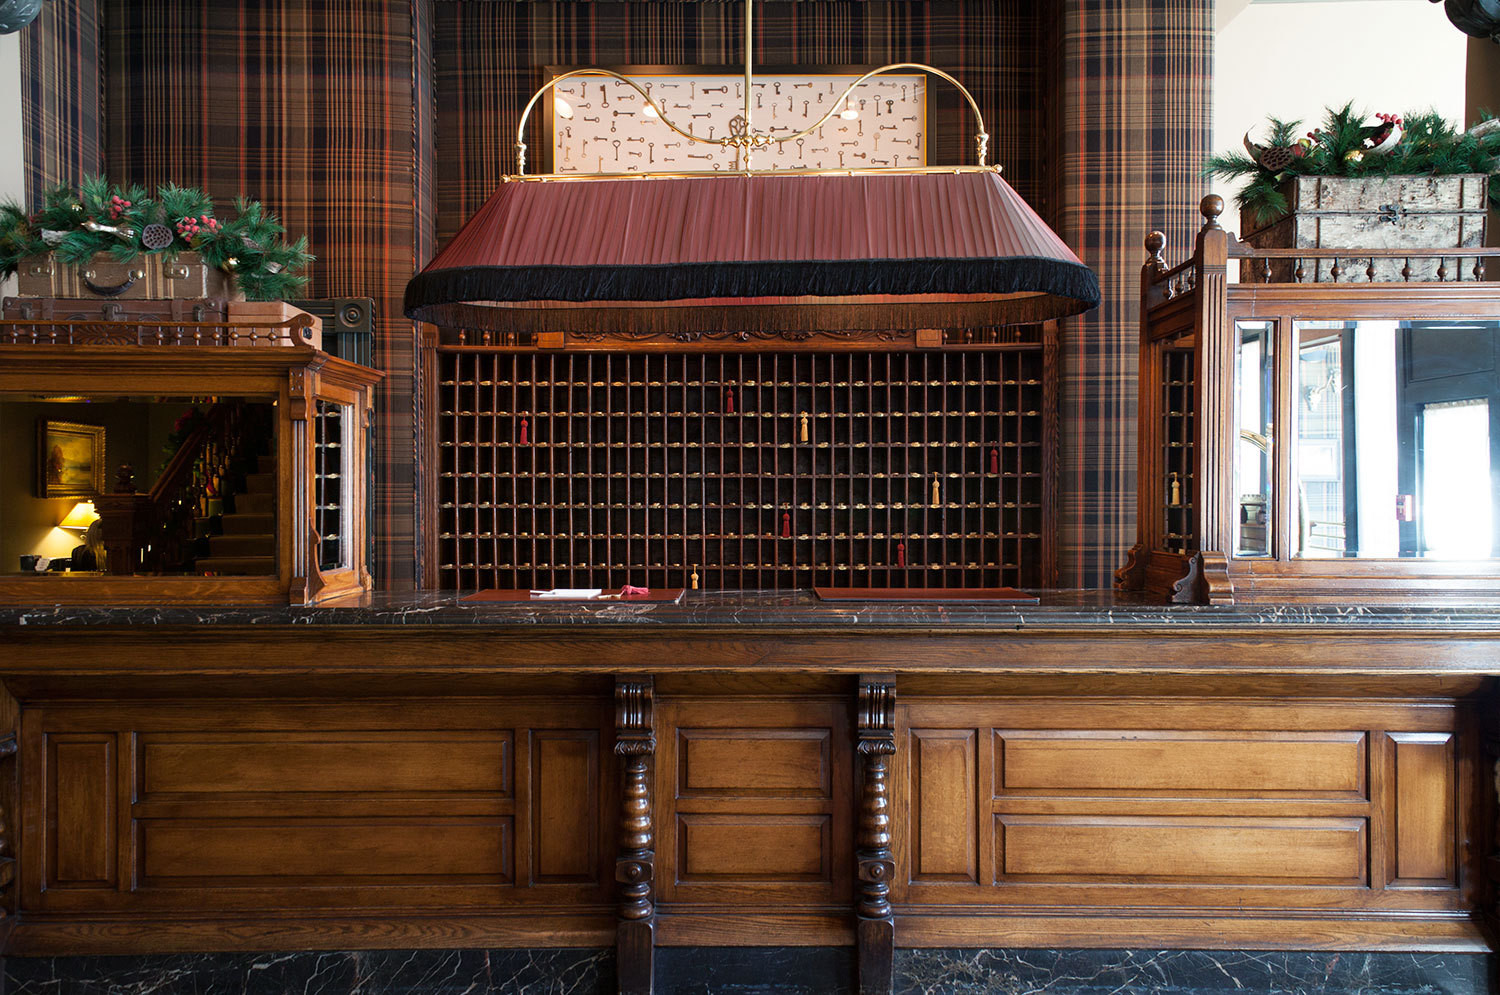 The original front desk dominates a plaid-and-marble-accented reception area.